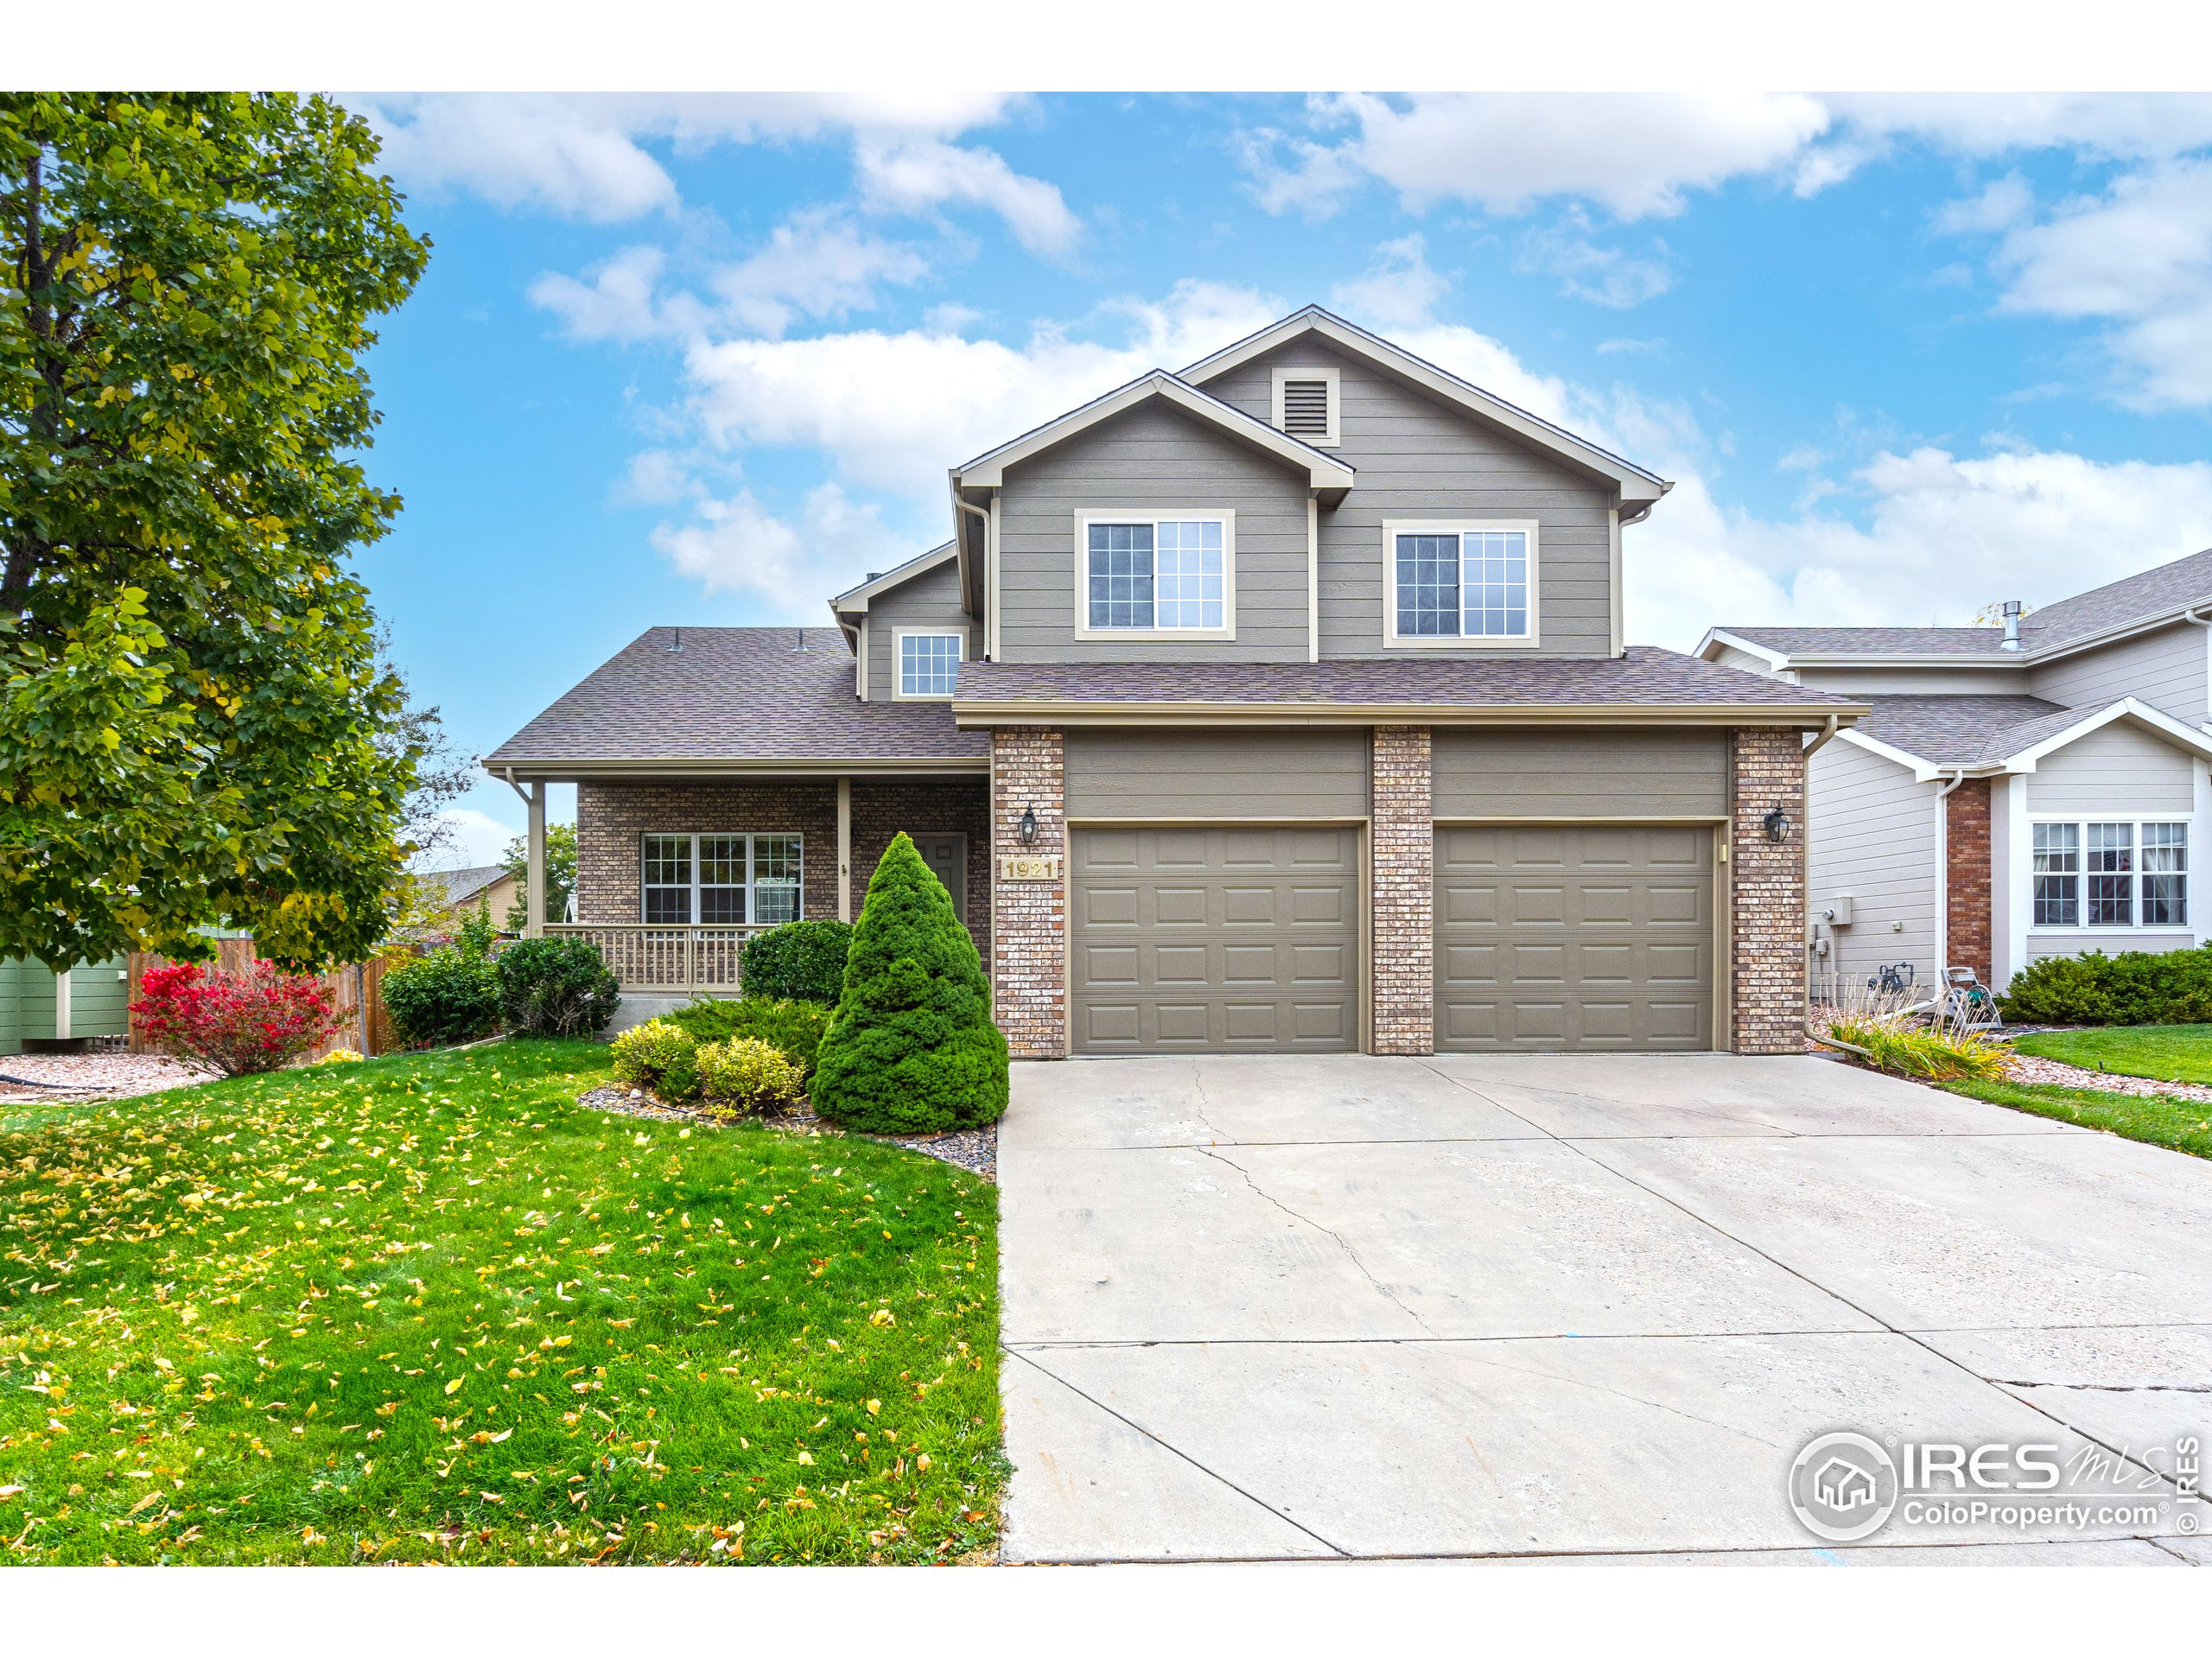 1921 Lookout Ln, Fort Collins, CO 80526